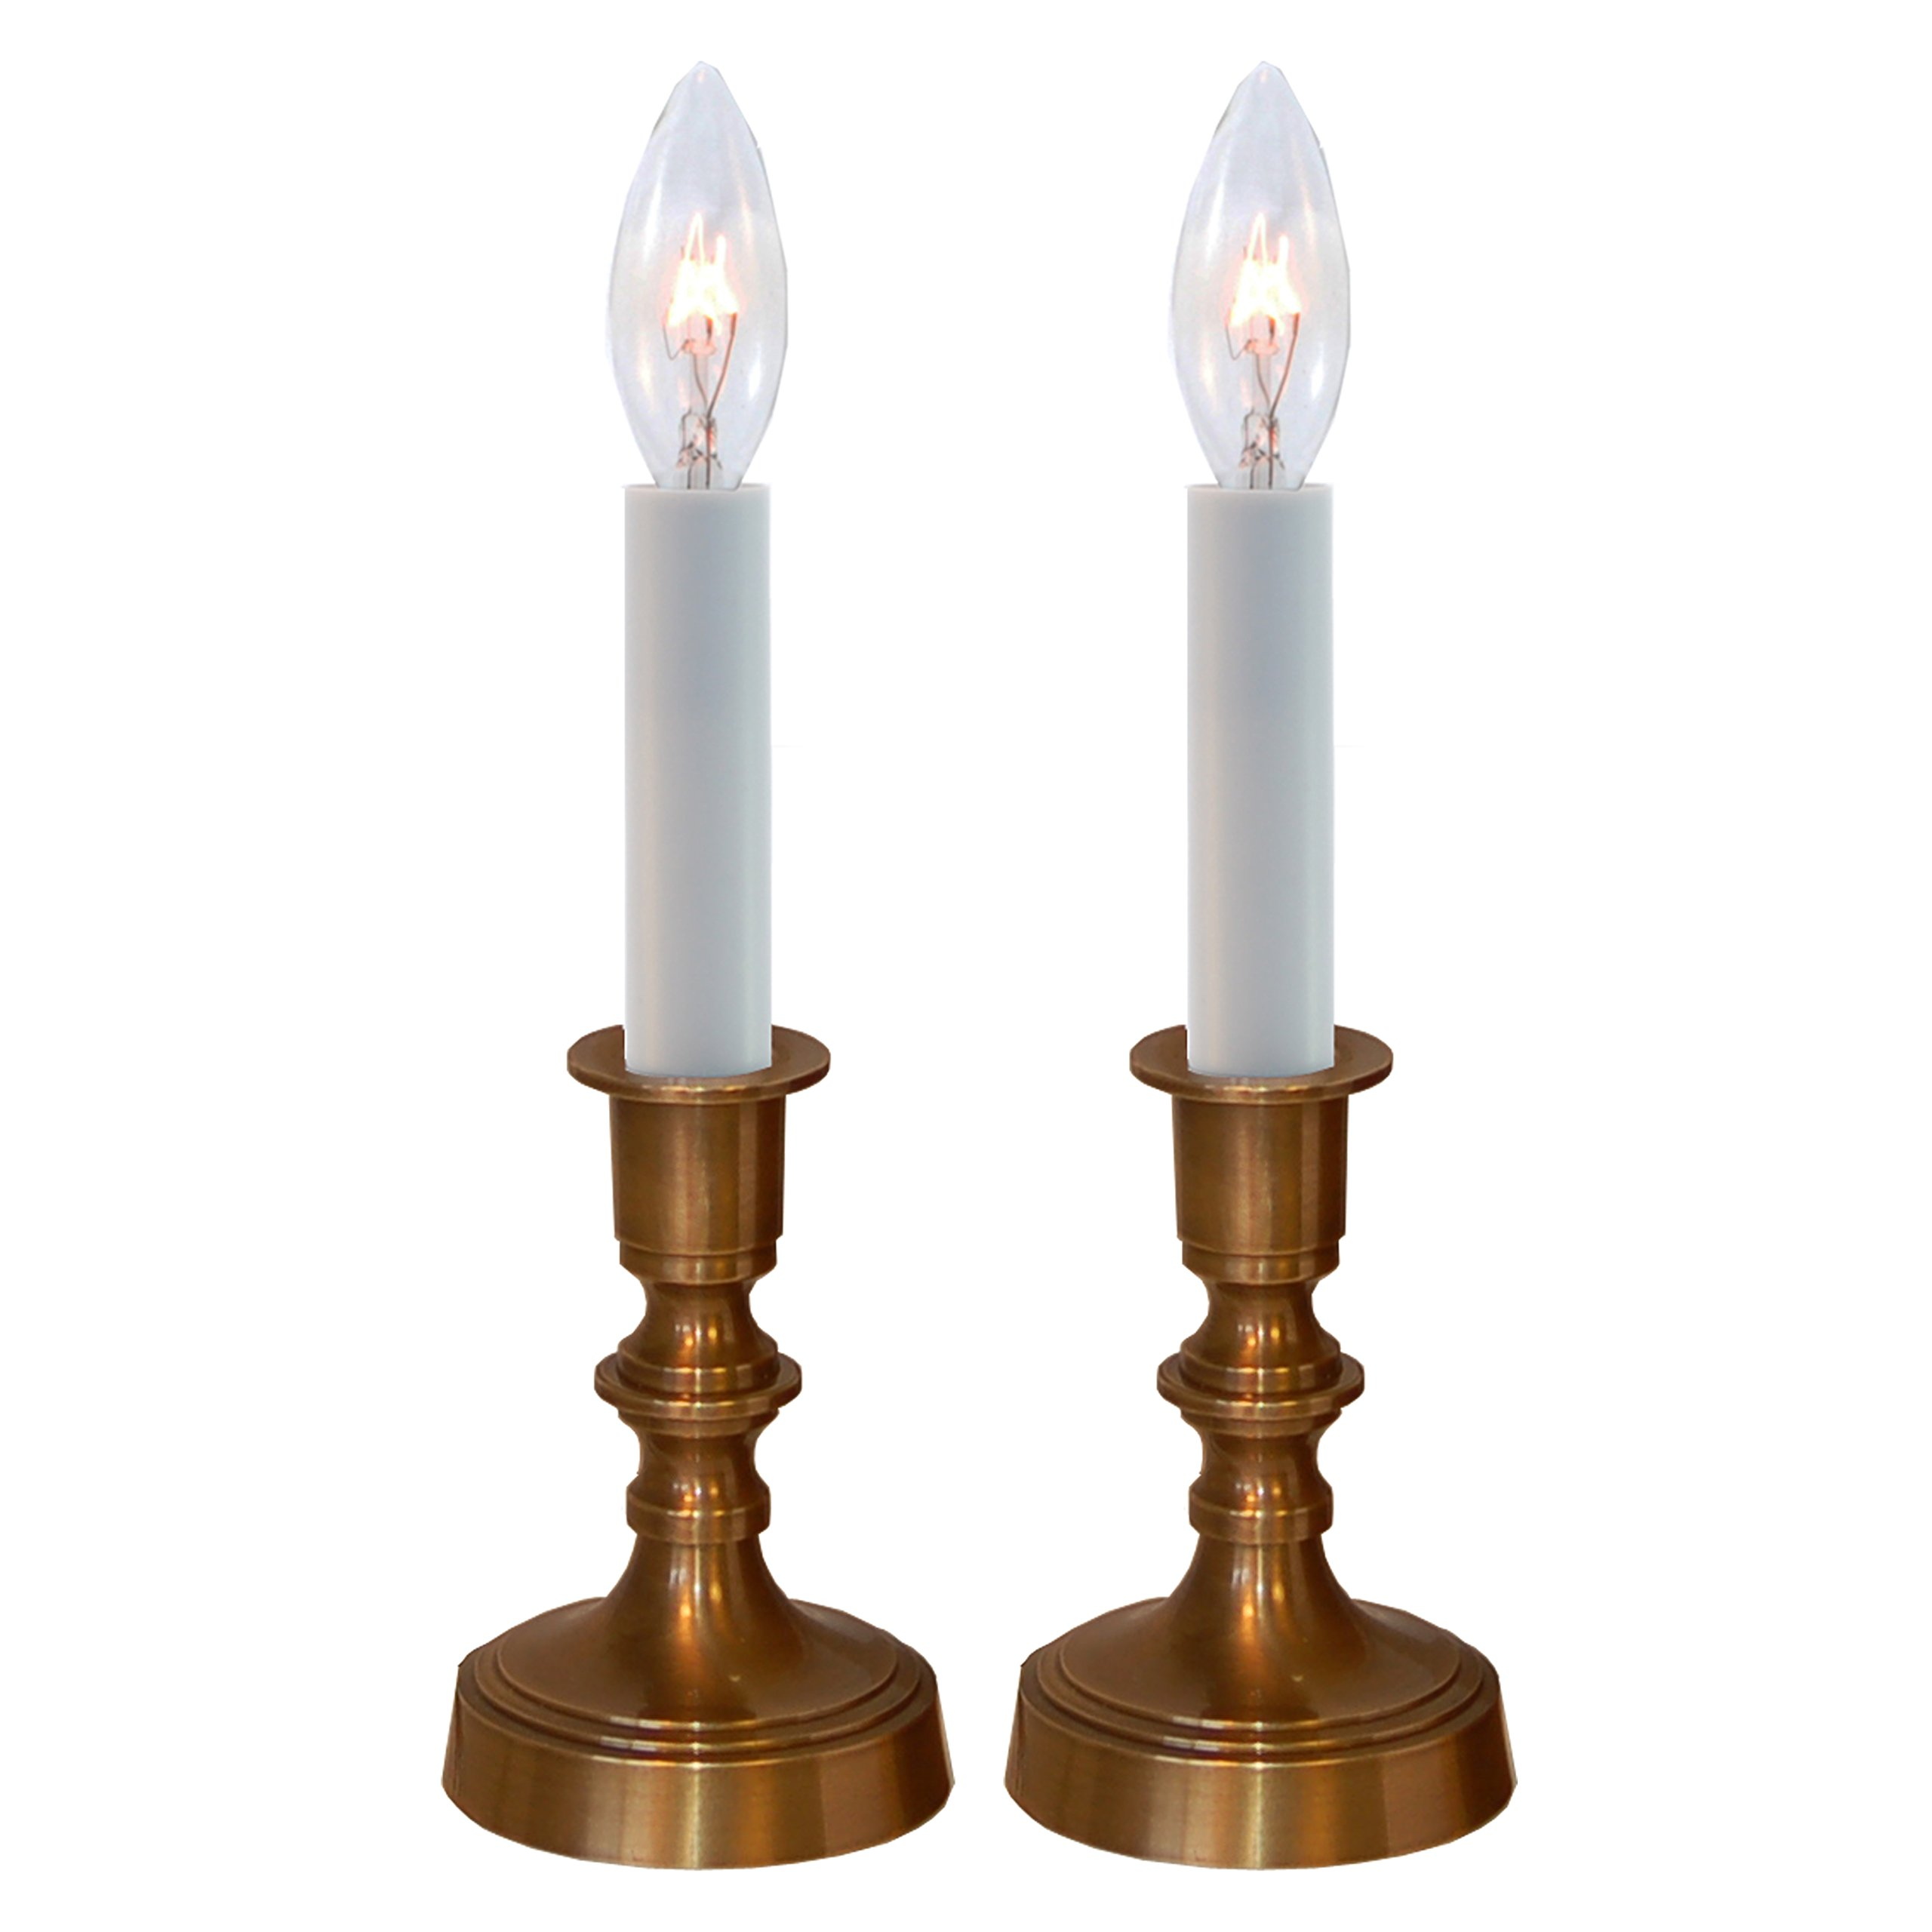 Solid Brass Antique Finish Window Accent Candle Lamp Set of 2 by Carpenter Creek